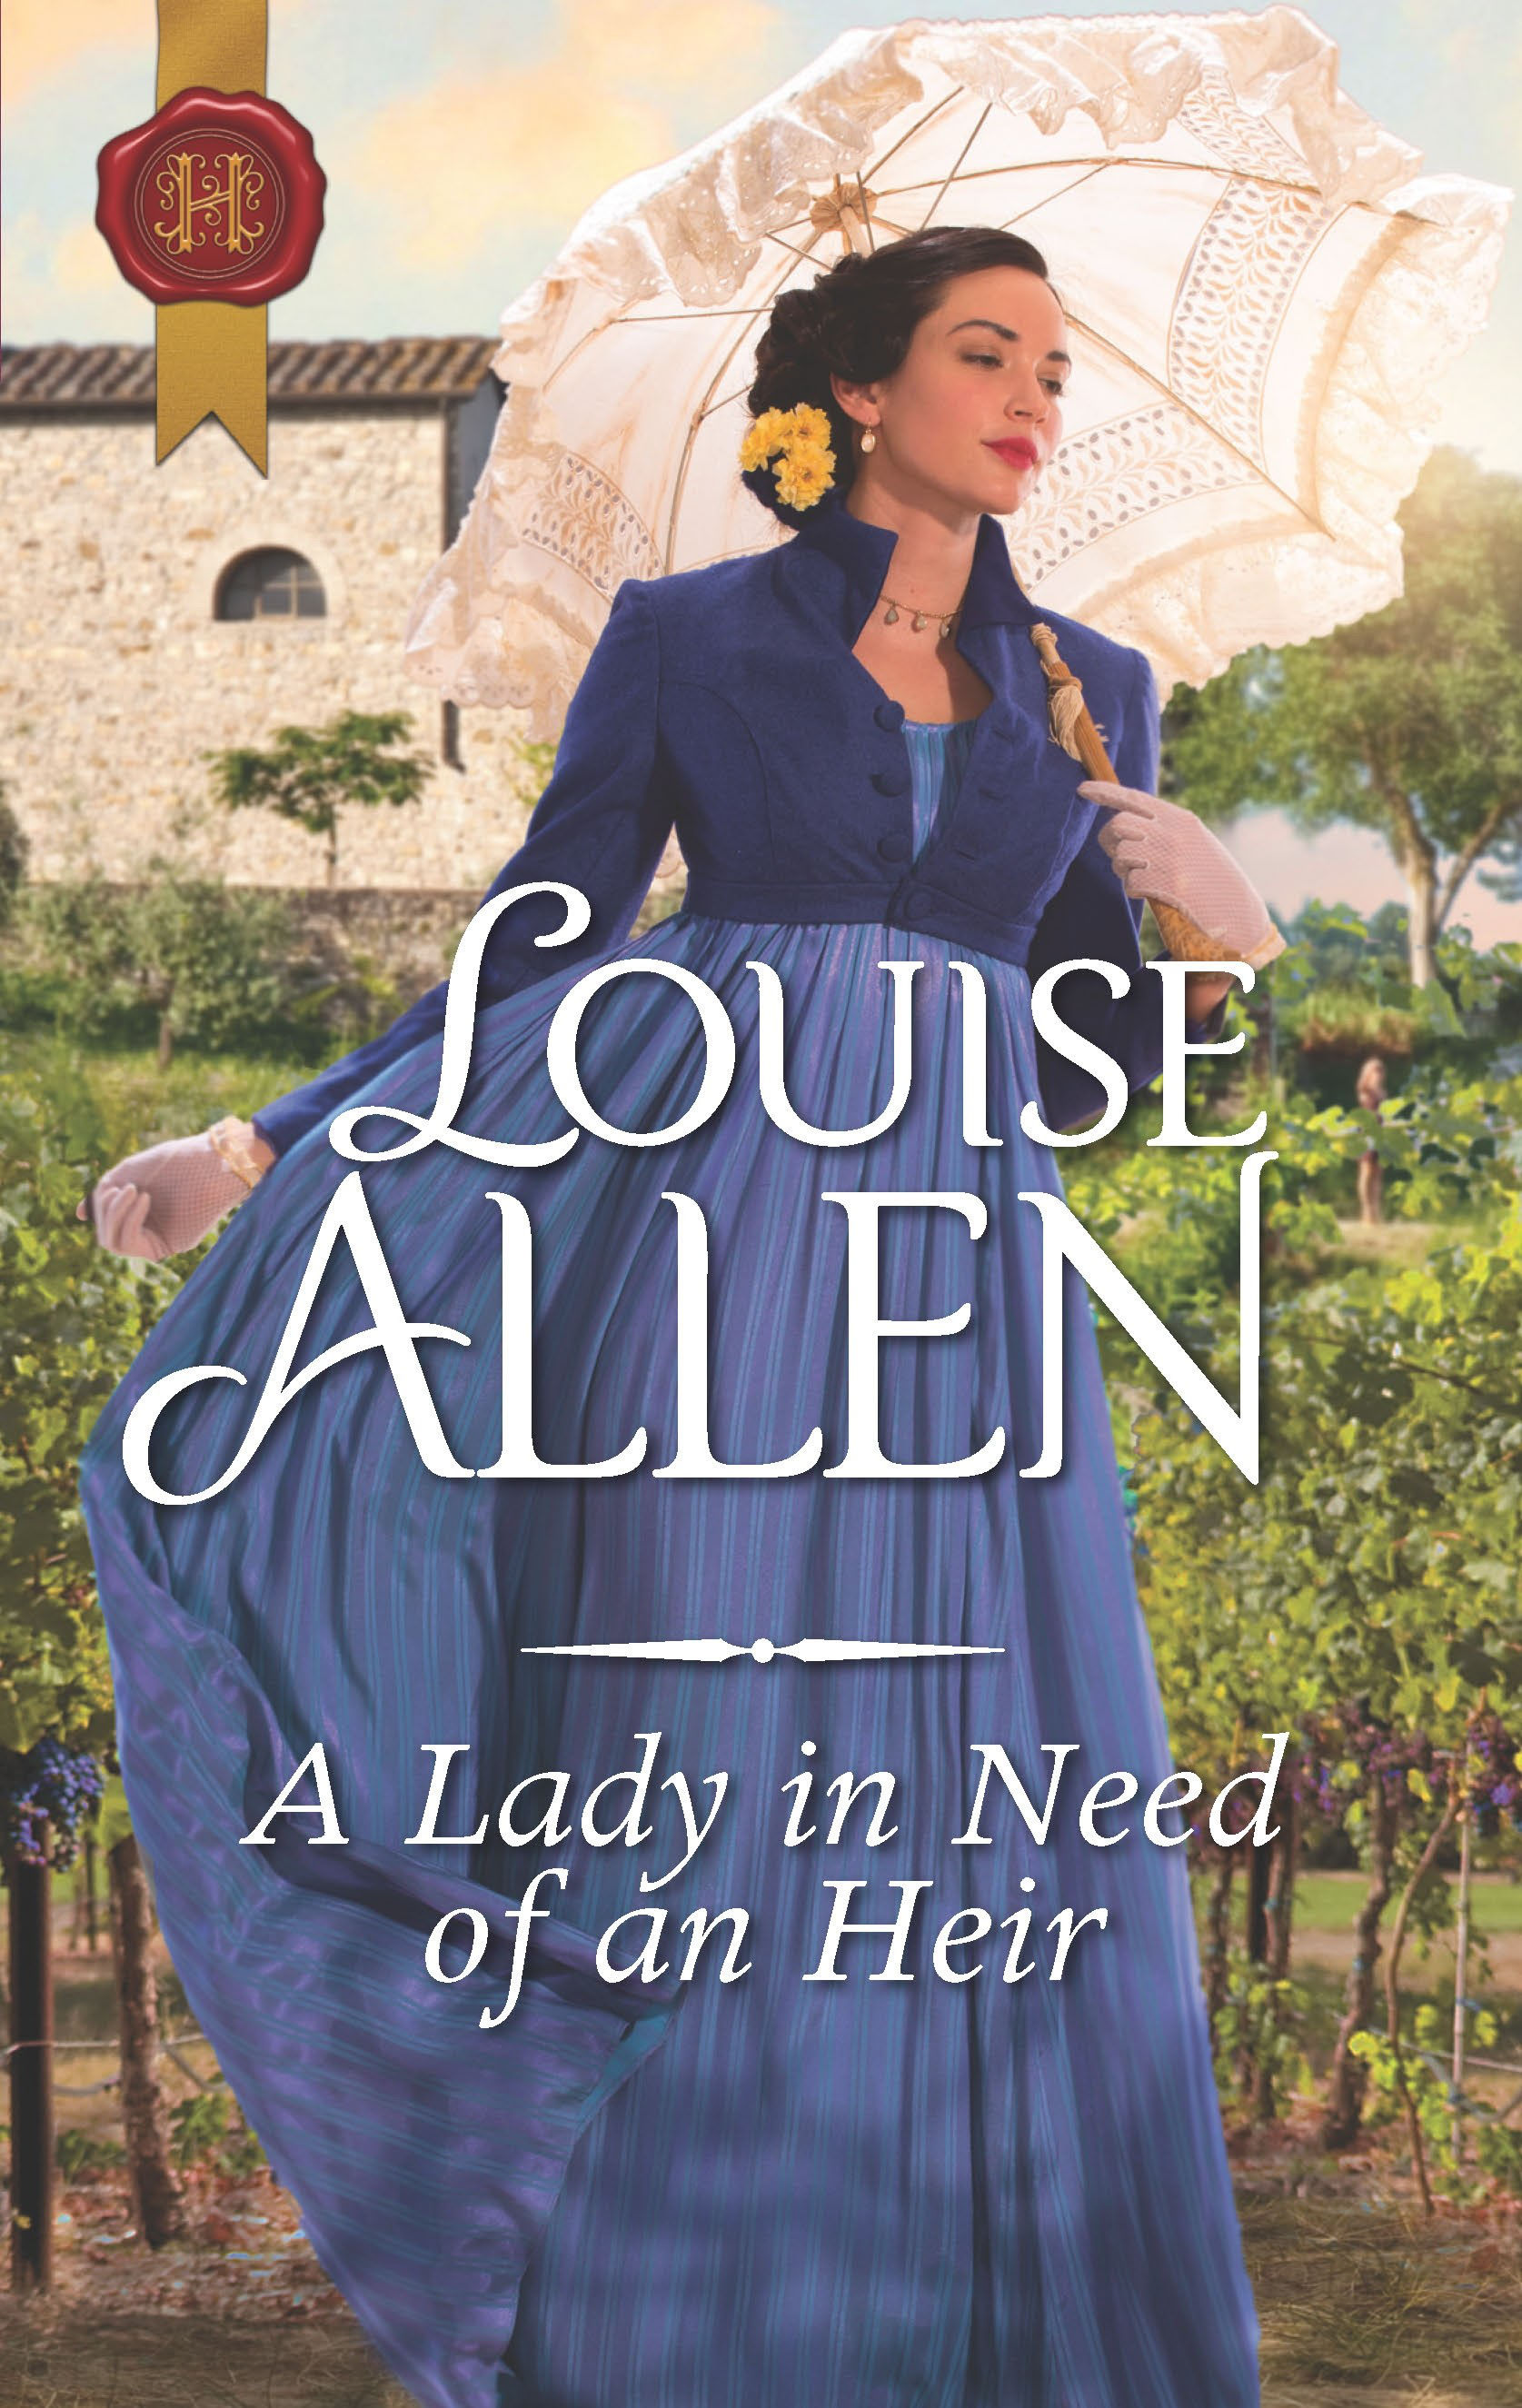 Cover of historical romance, A Lady in Need of an Heir, by Louise Allen